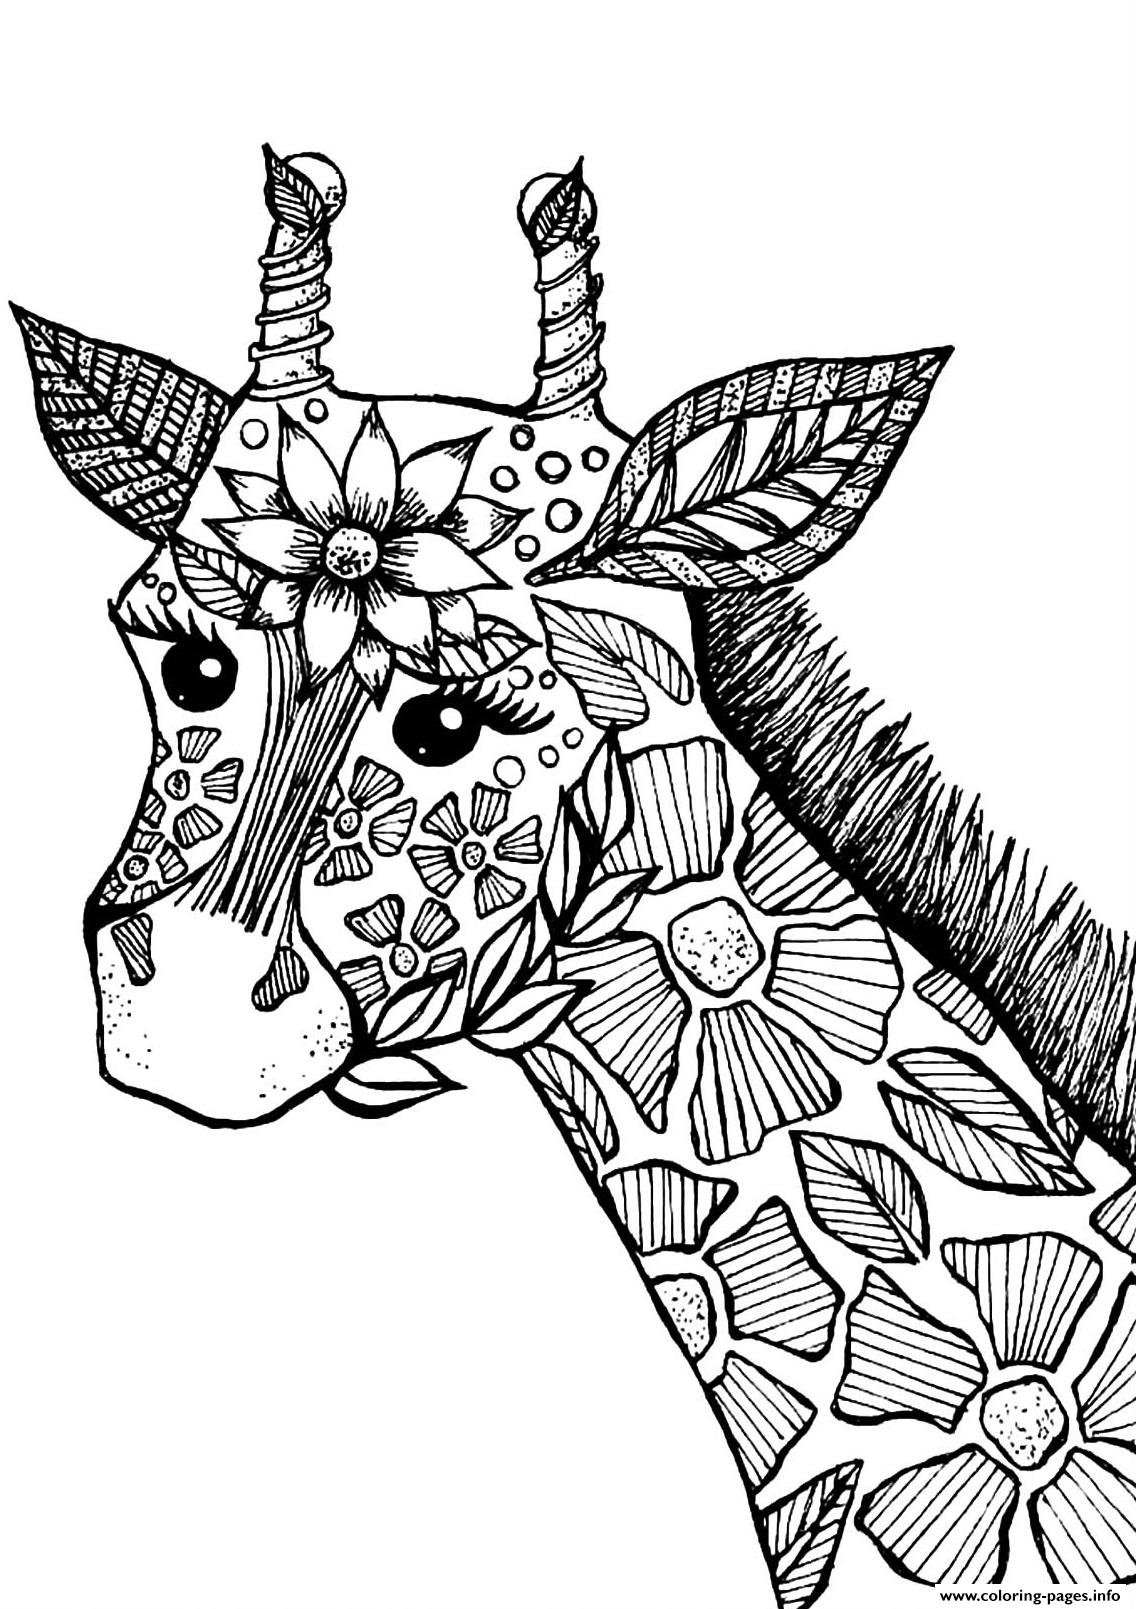 cool coloring sheets to print | hd cool flower coloring pages ... | 1609x1136